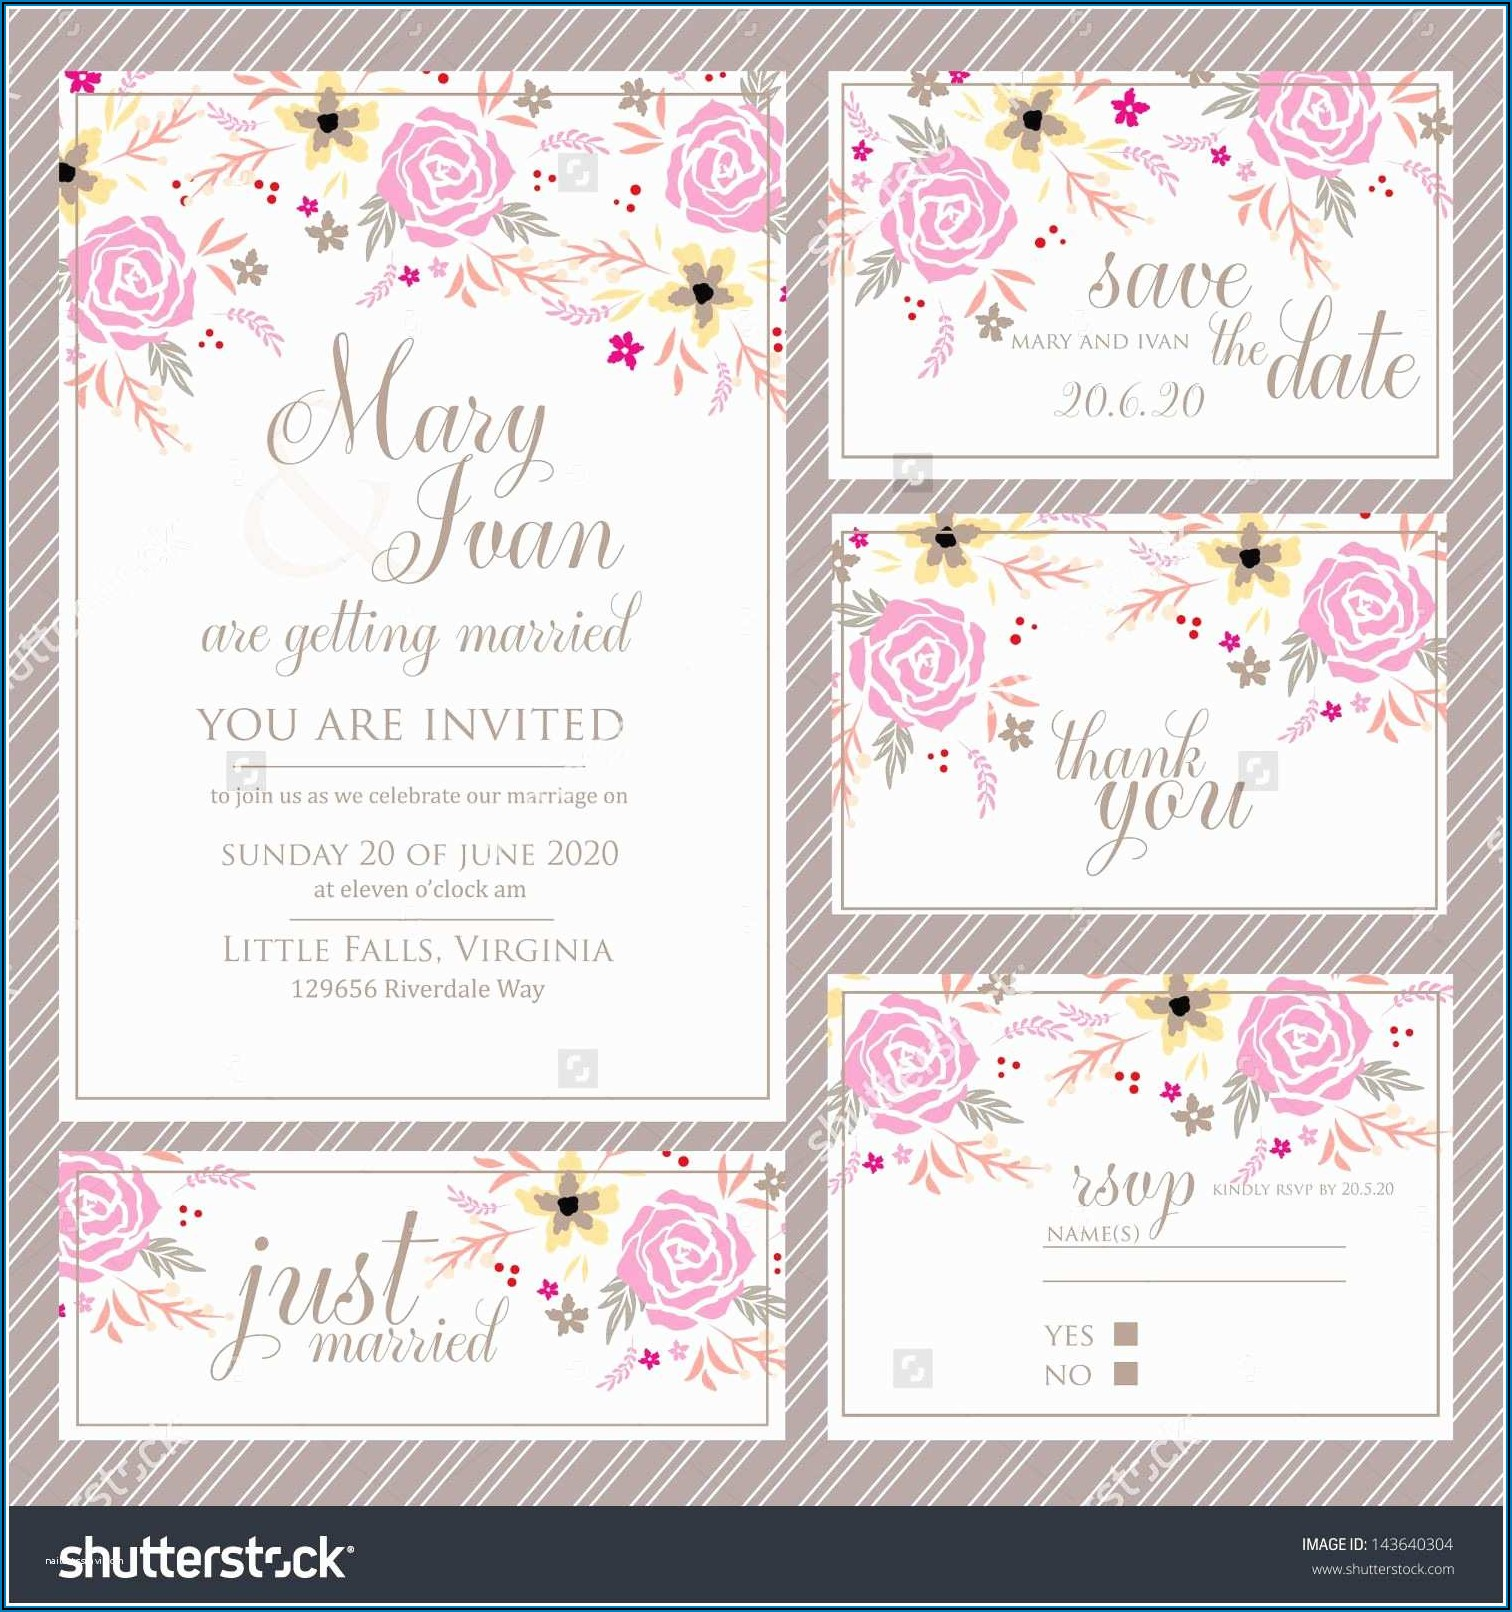 Wedding Invitations With Rsvp Cards Included Uk